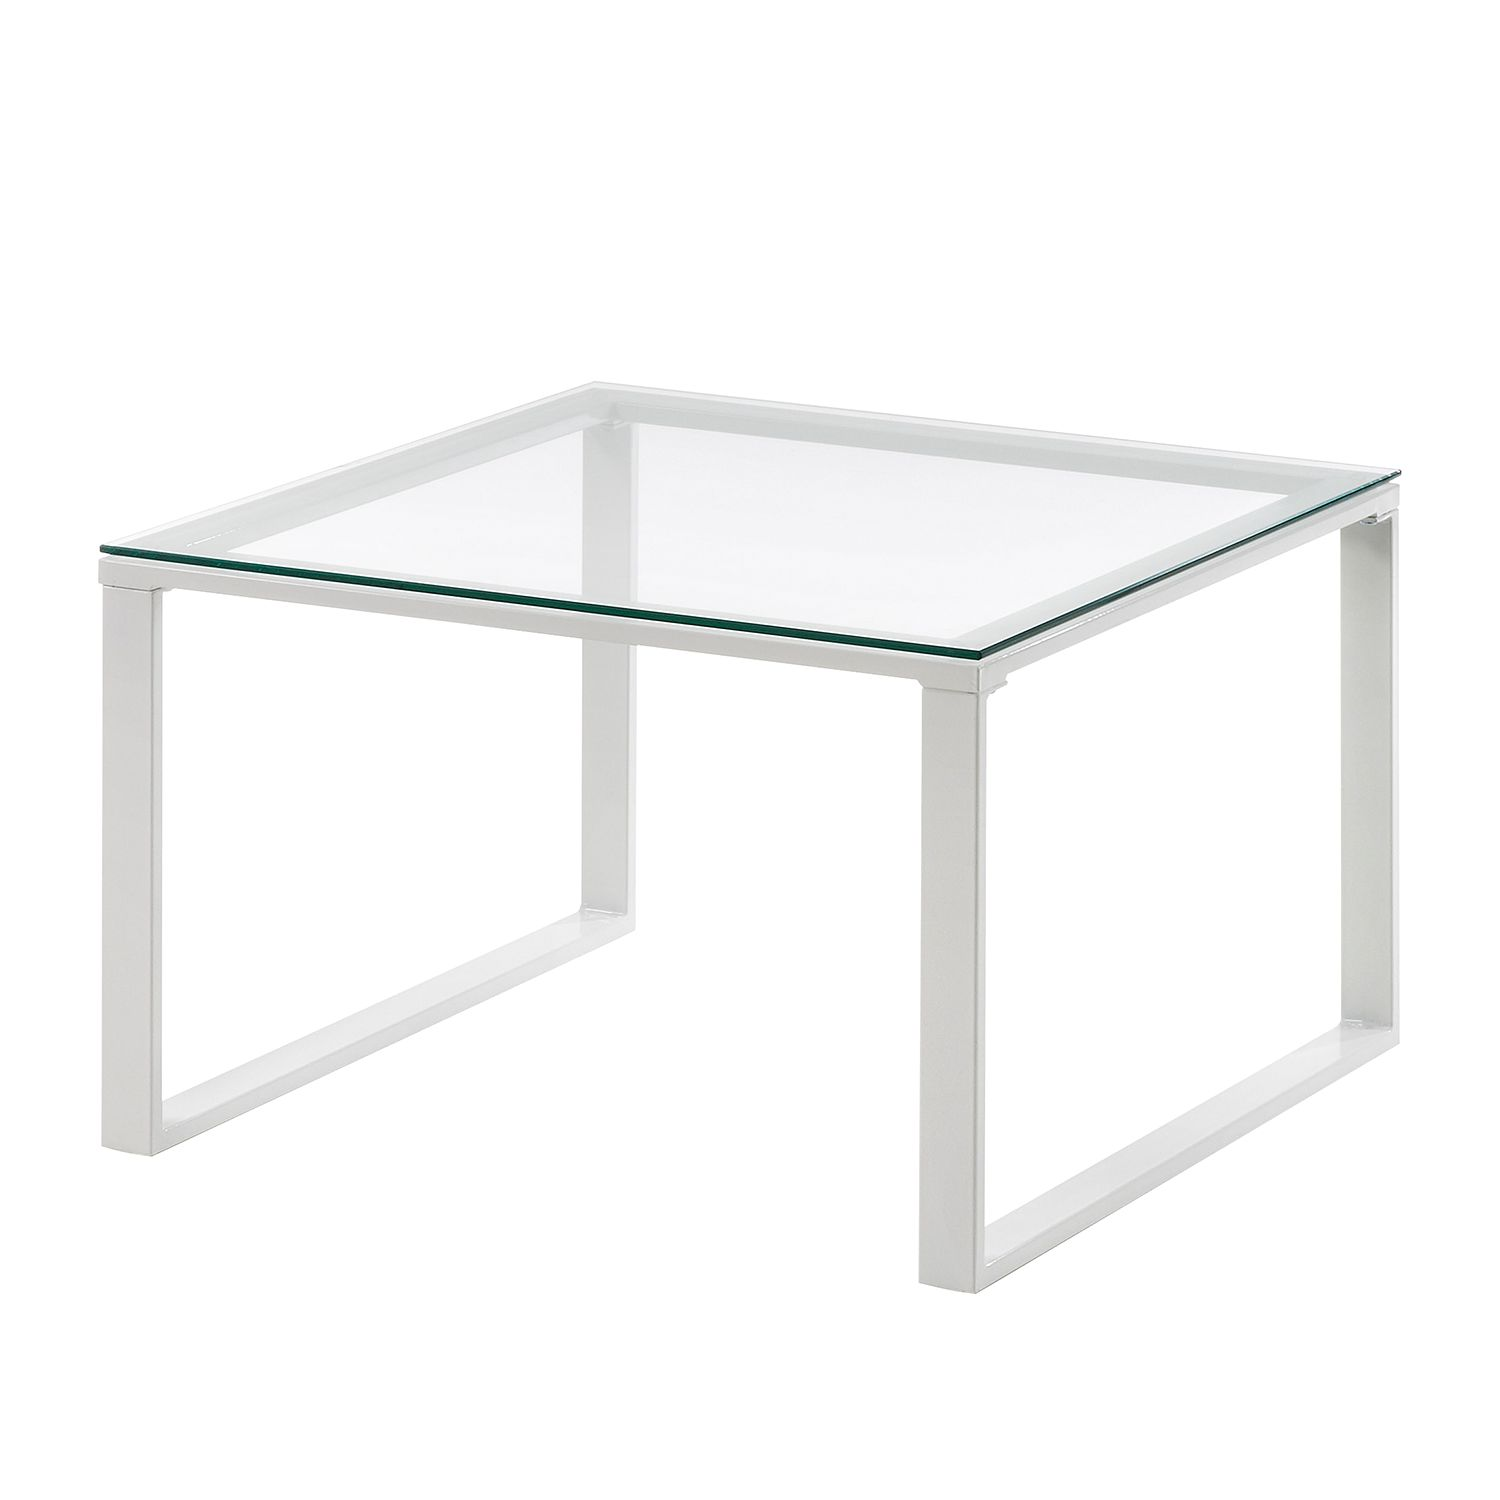 Table basse Montalto